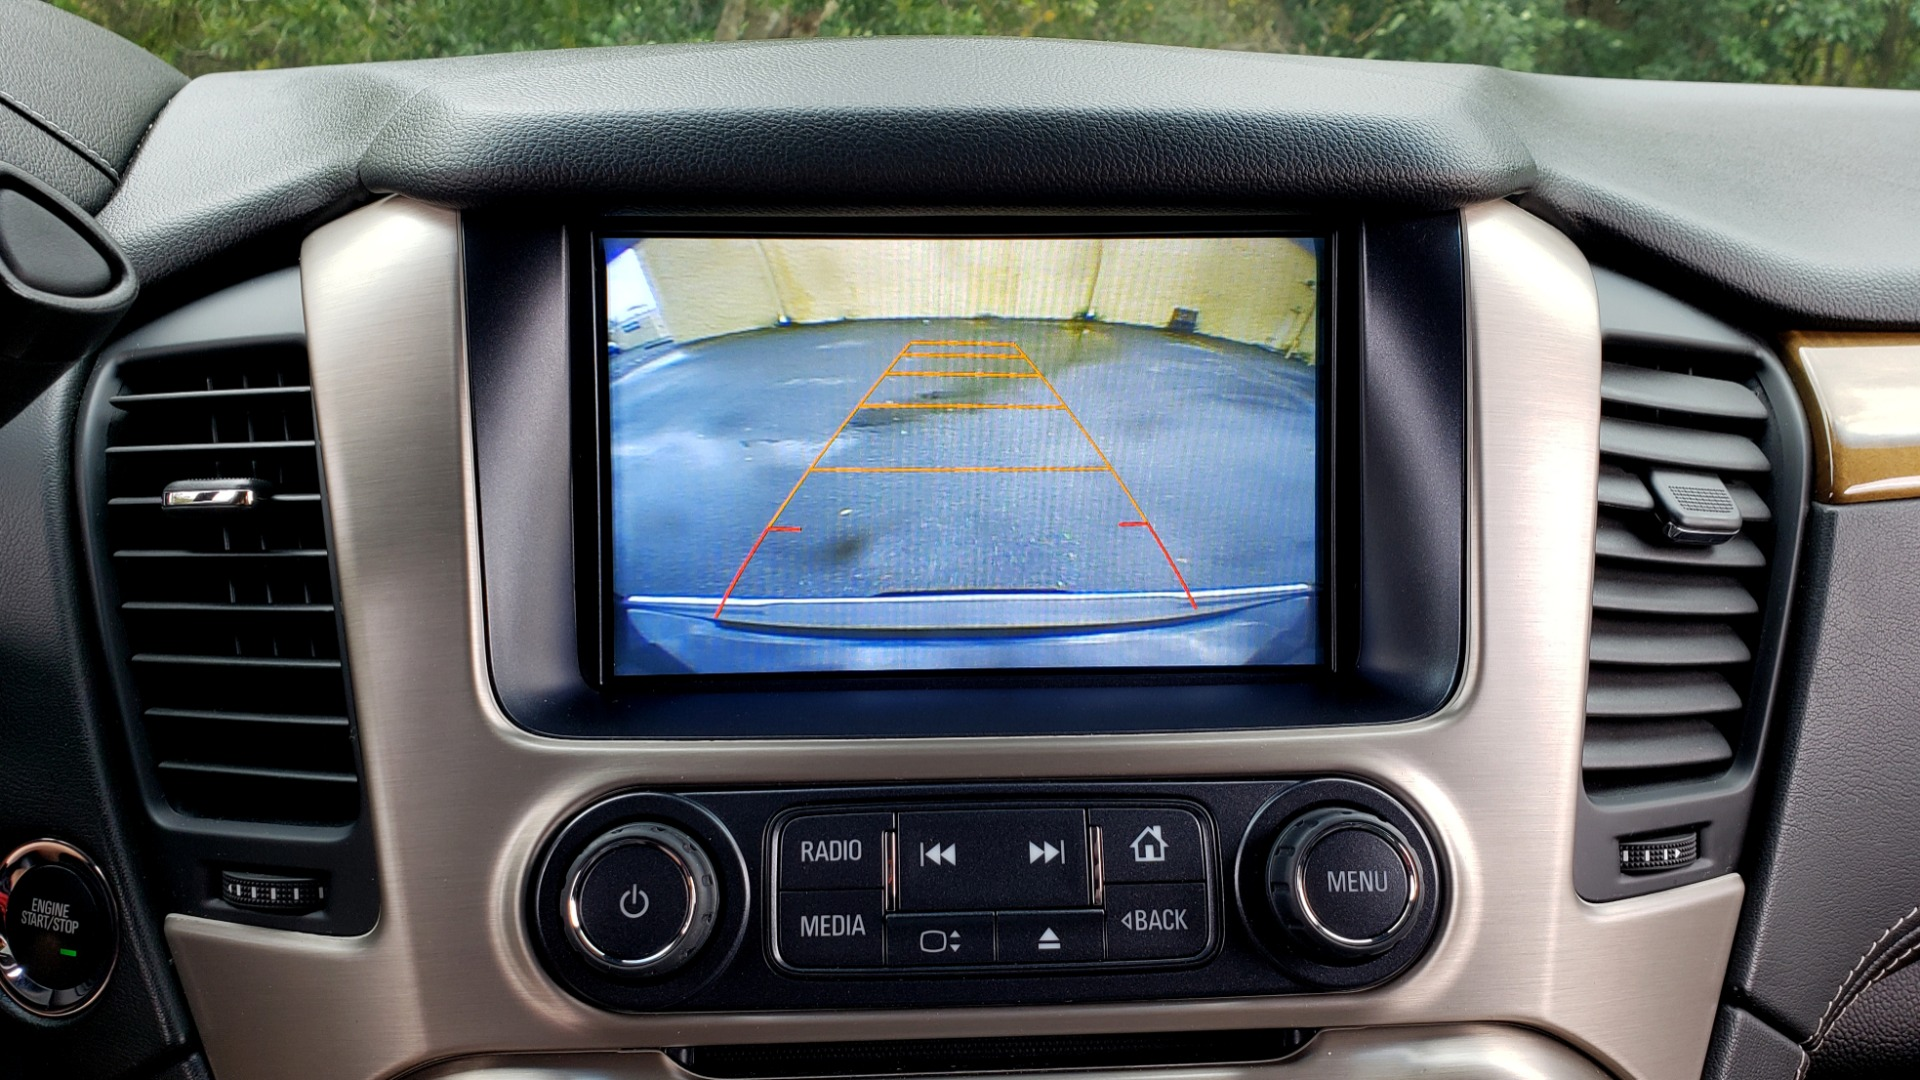 Used 2017 GMC YUKON XL DENALI 4WD / NAV / SUNROOF / ENT / 3-ROWS / BOSE / REARVIEW for sale Sold at Formula Imports in Charlotte NC 28227 51